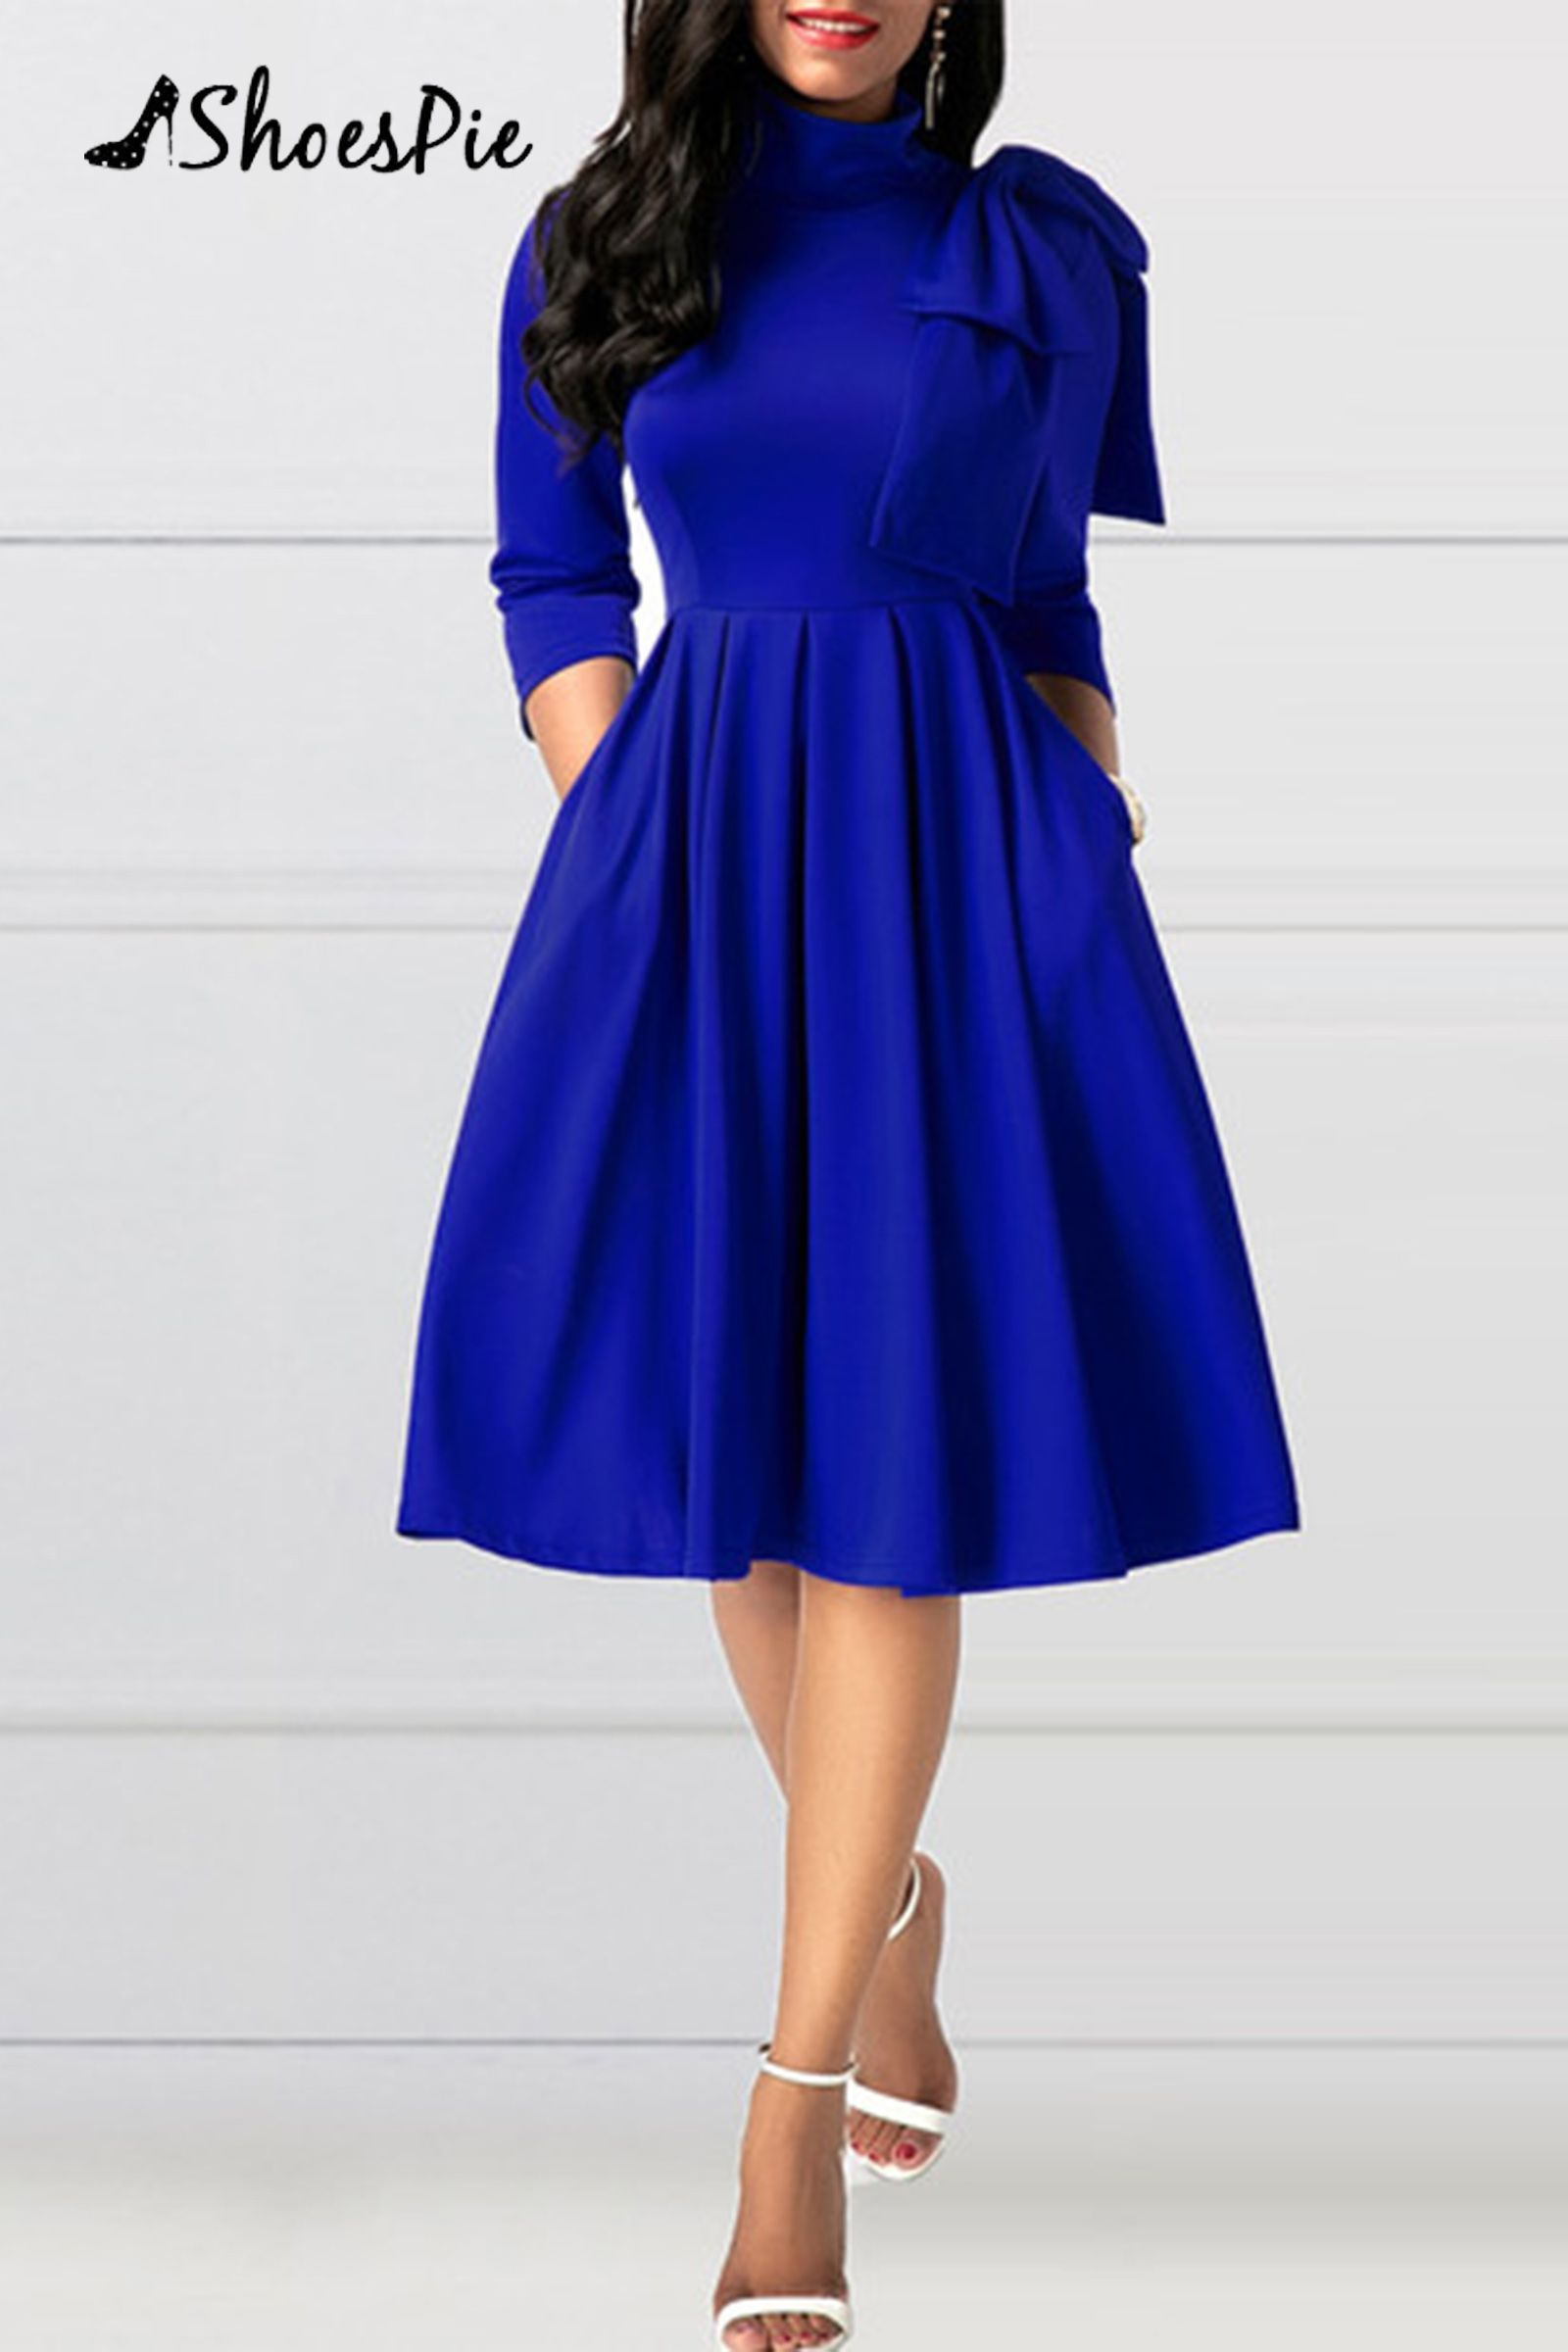 A-Line Dresses for Women,A Line Dress with Sleeves,Ladies a Line Dresses,Women's a Line Dresses,Women a Line Dresses,a line dresses with sleeves,a line dresses for women,a line dresses for women,